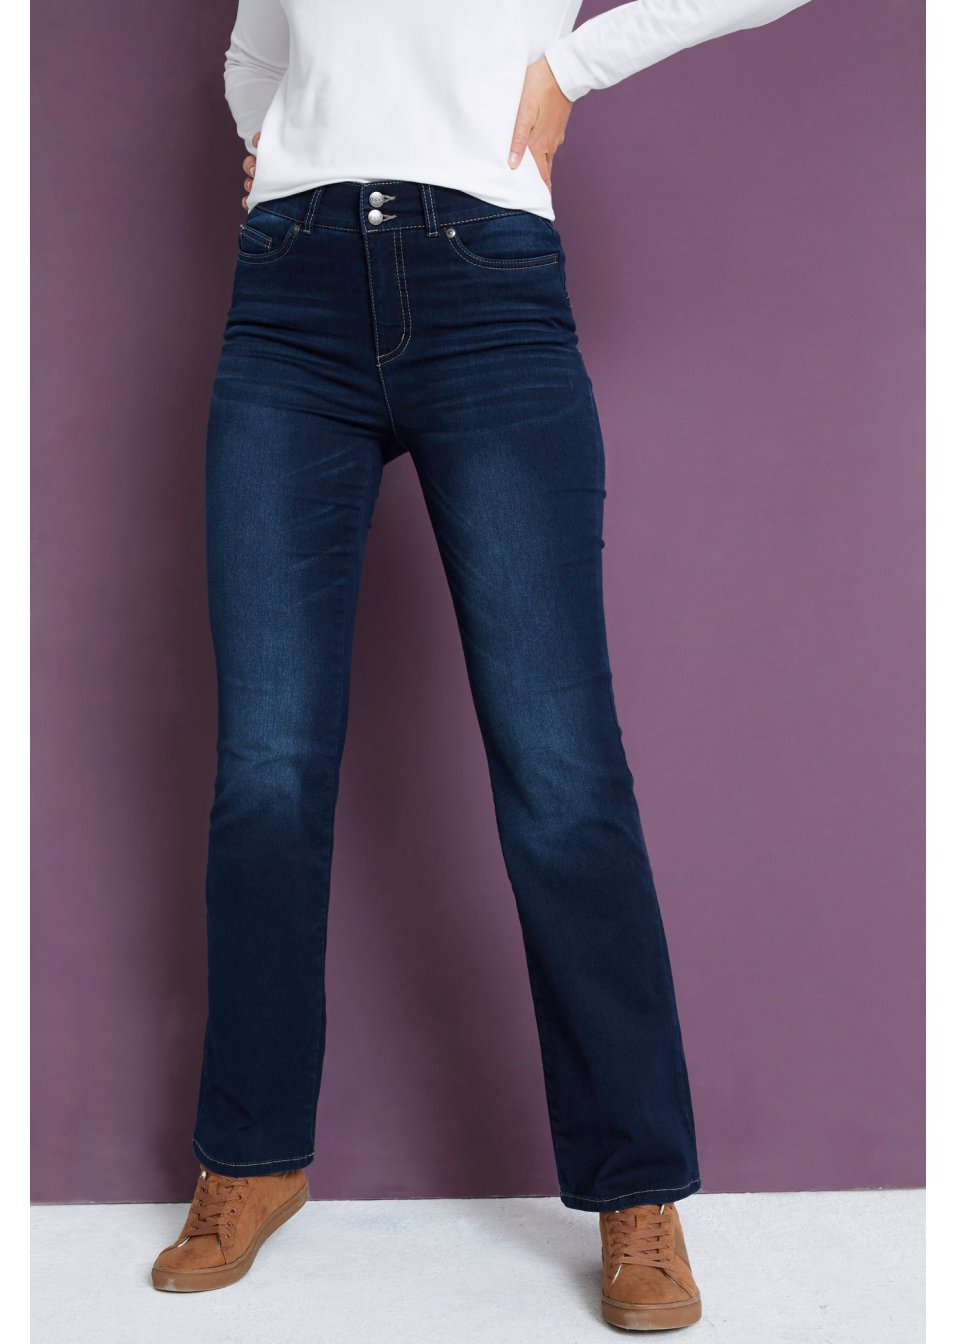 40,44 Push up Jeans Strechjeans Knopfleiste Gr